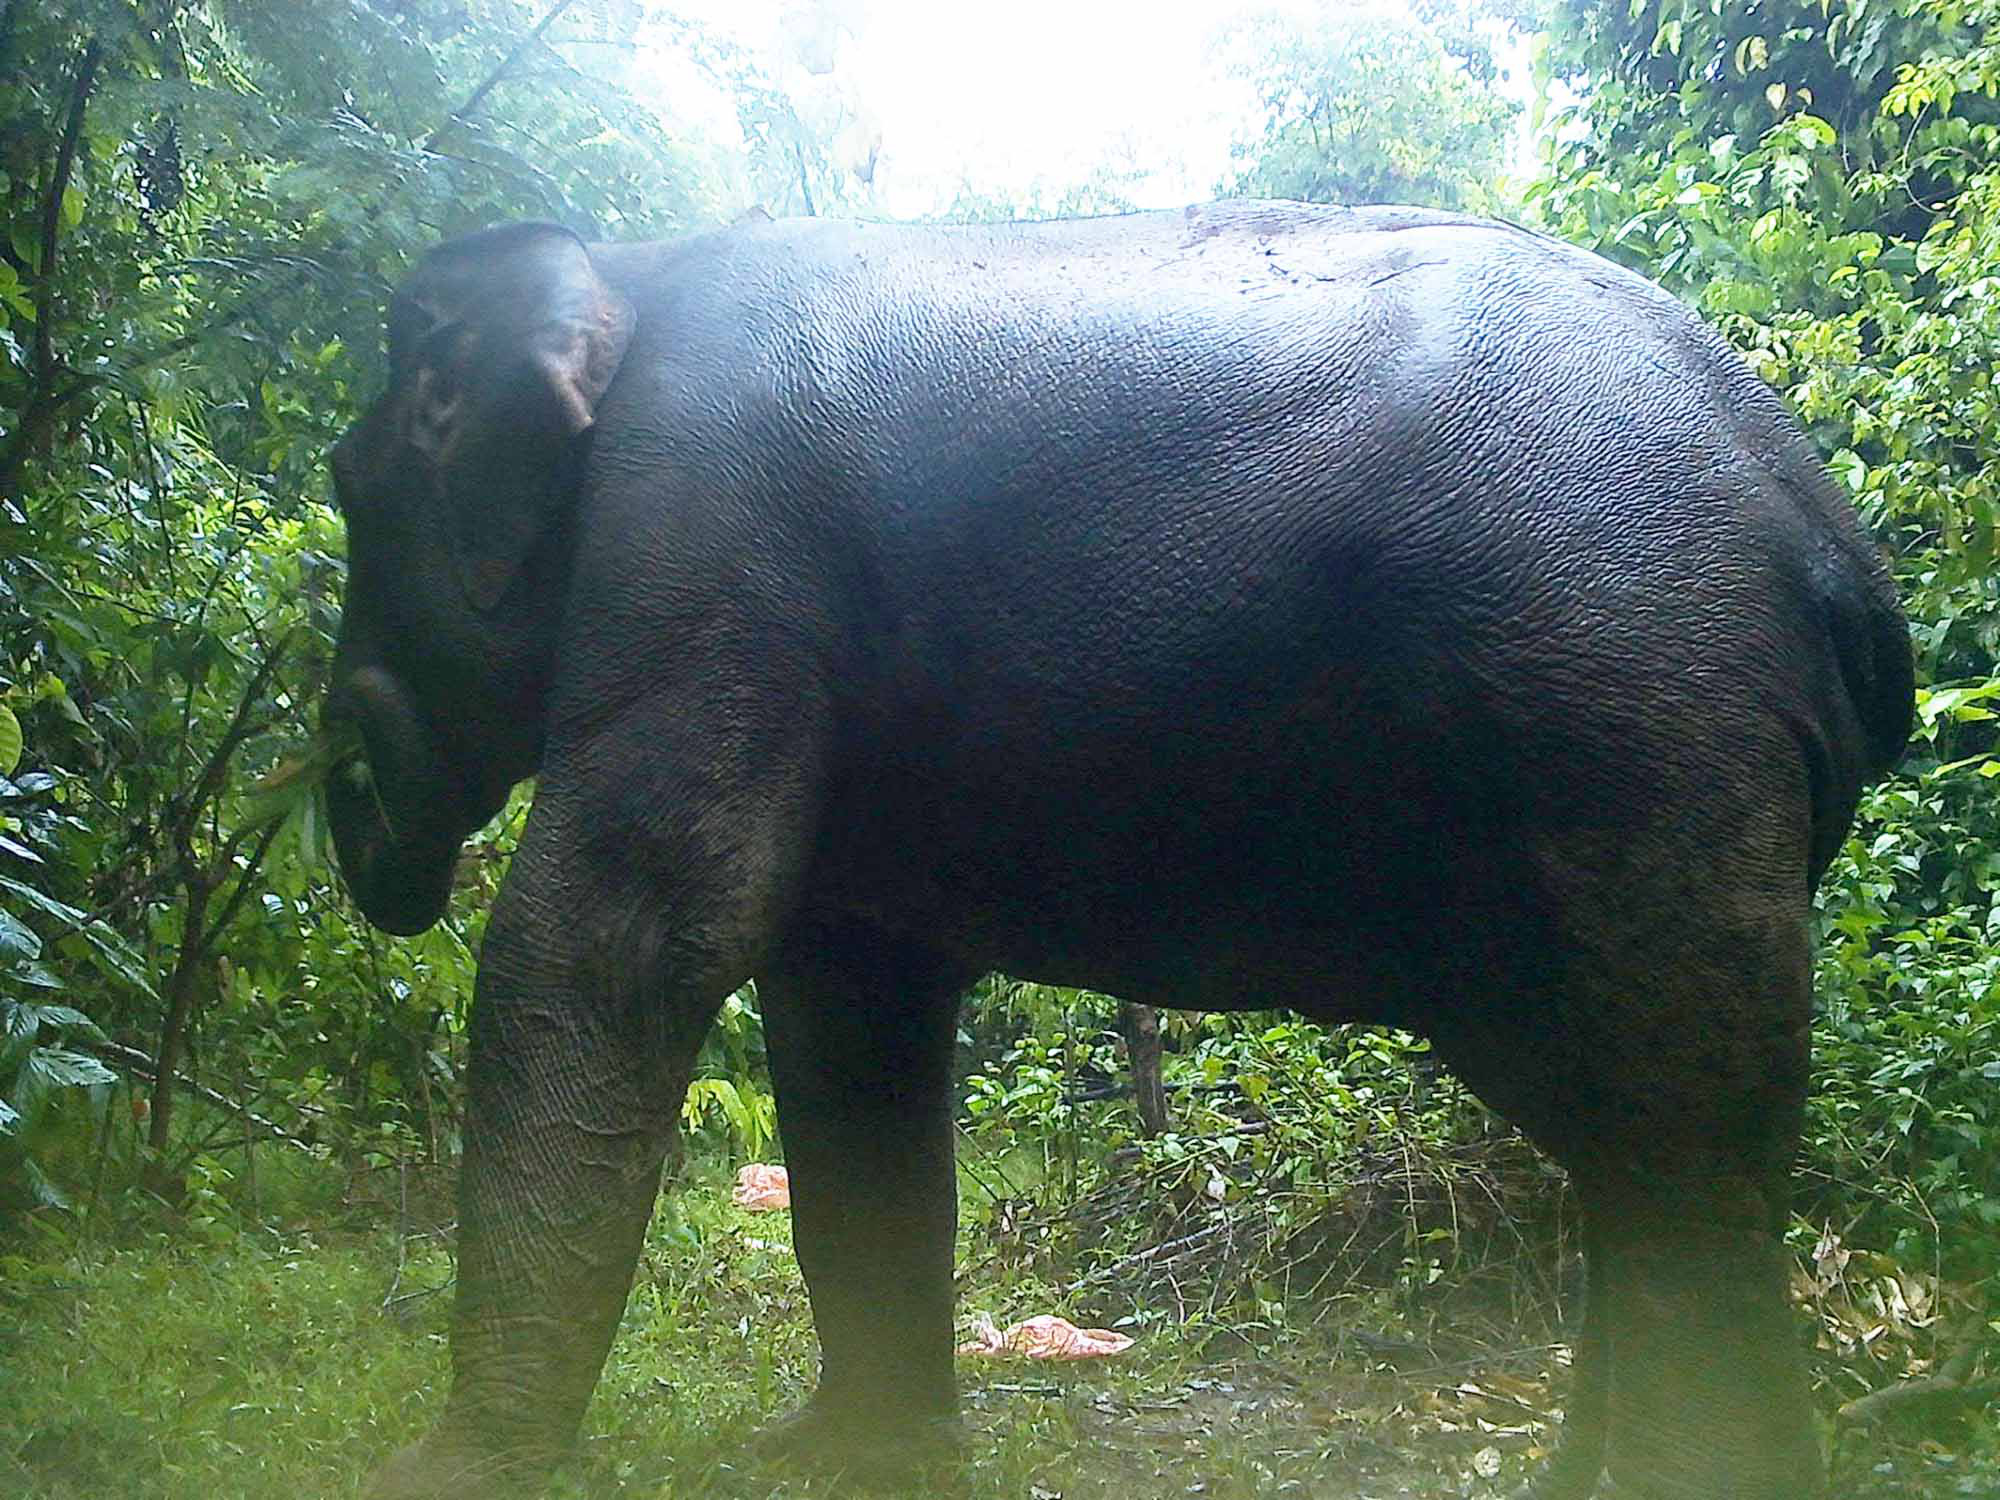 An elephant is captured by a camera trap set up in the Quang Nam Elephant Sanctuary, located in the namesake province in central Vietnam, in this supplied photo.